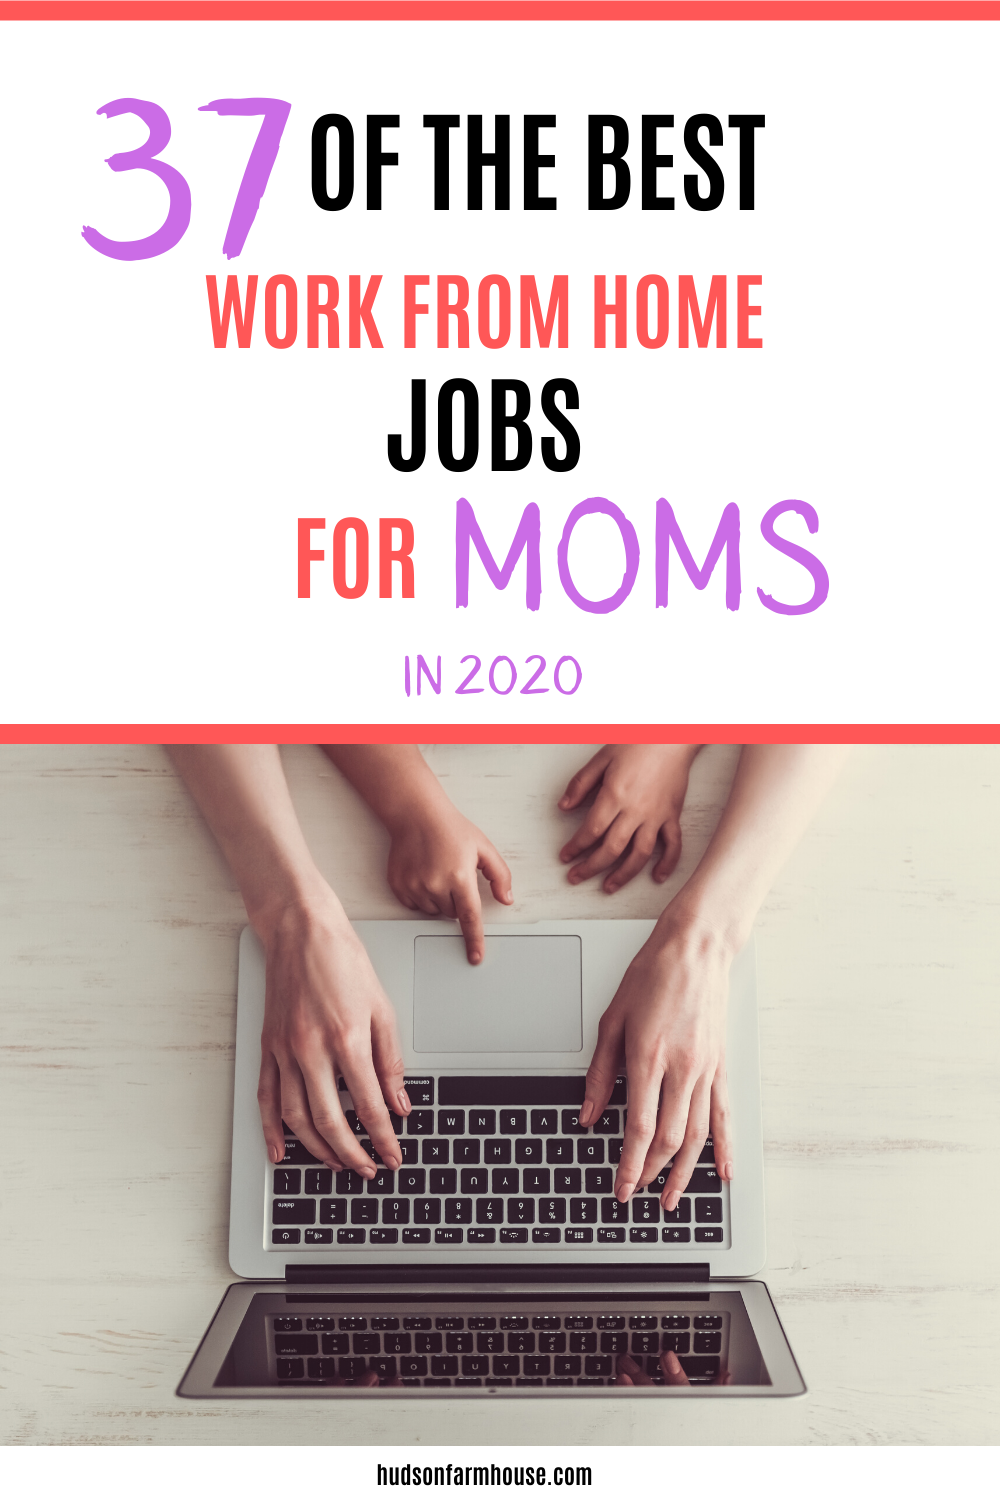 Work From Home Jobs For Moms In 2020 Mom Jobs Work From Home Jobs Blogging Jobs